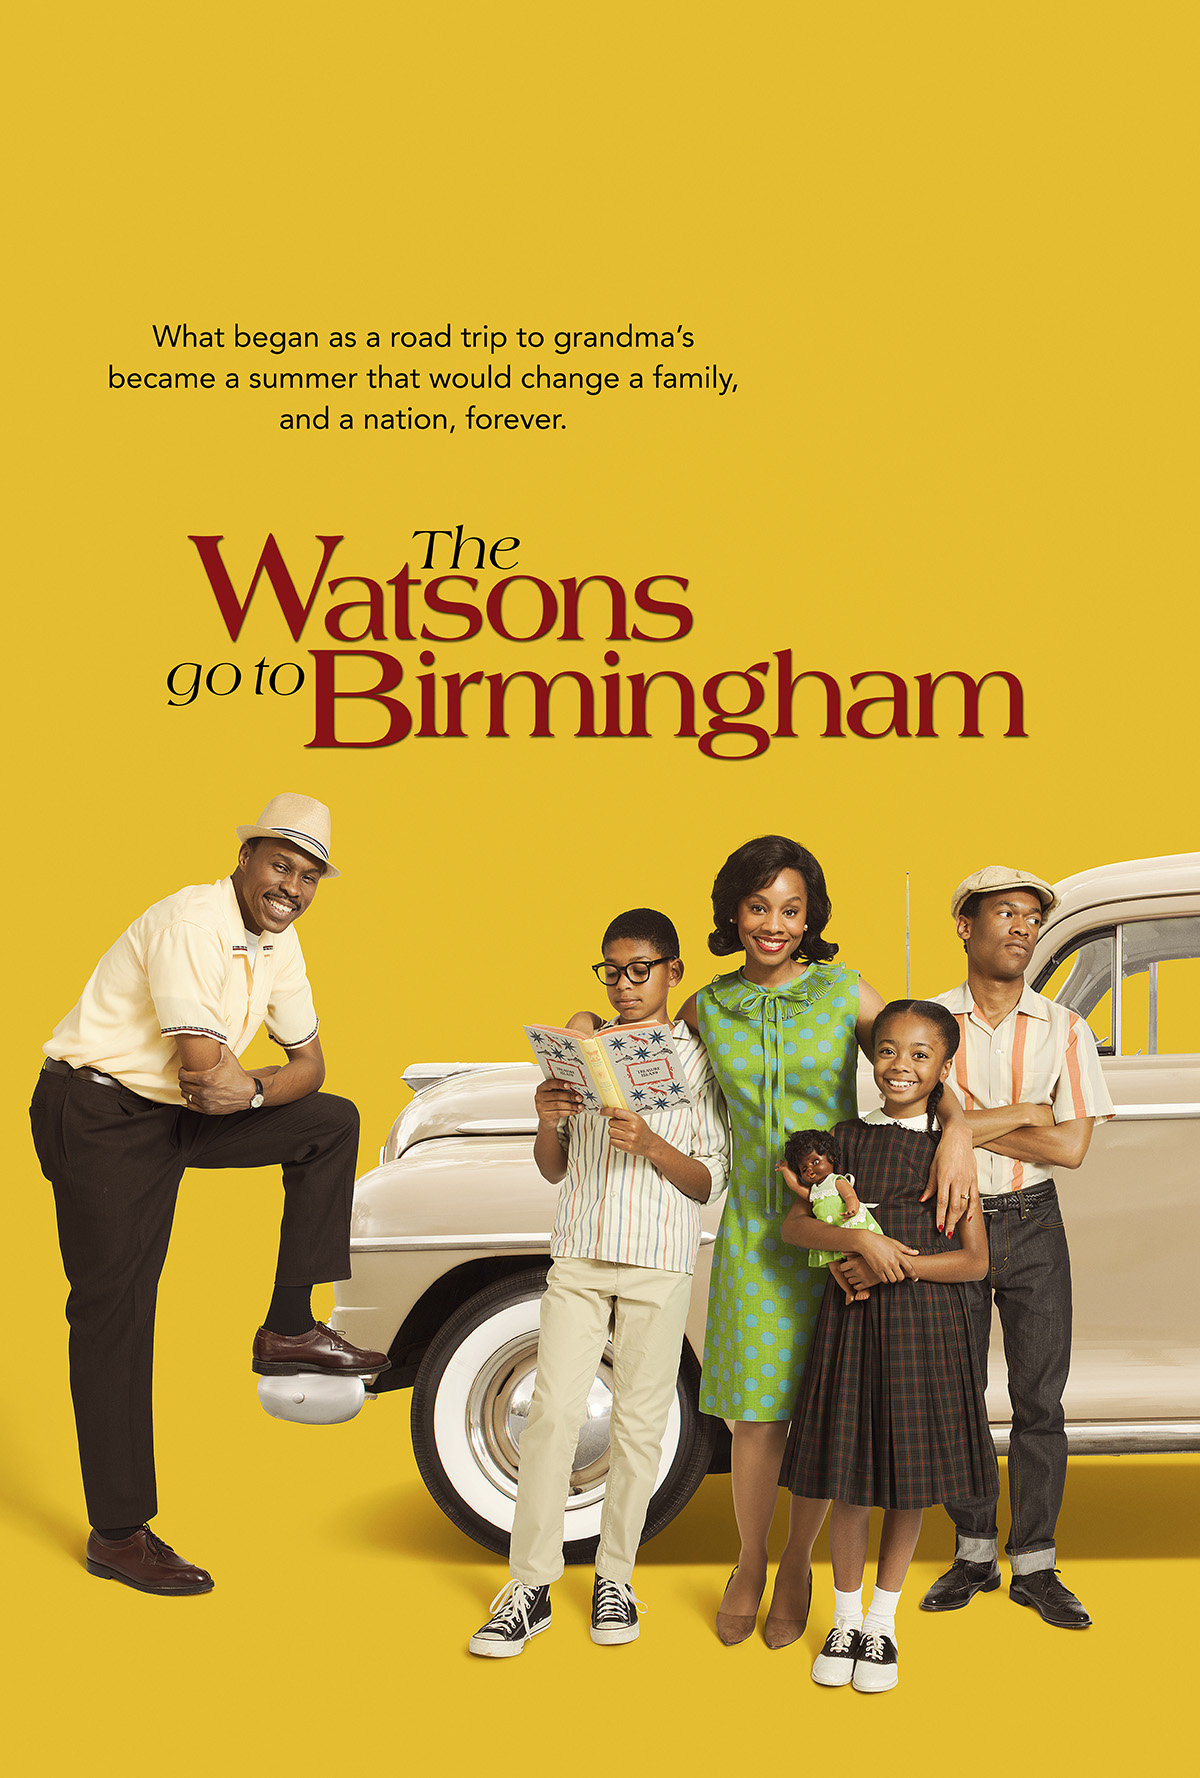 David Alan Grier, Lori Beth Sikes, Wood Harris, Javon Johnson, E. Roger Mitchell, Margo Moorer, Pauletta Washington, LaTanya Richardson Jackson, Anika Noni Rose, Harrison Knight, Skai Jackson, Josephine Lawrence, Bryce Clyde Jenkins, Tyrin Niles, Shameik Moore, and Bailey Tippen in The Watsons Go to Birmingham (2013)